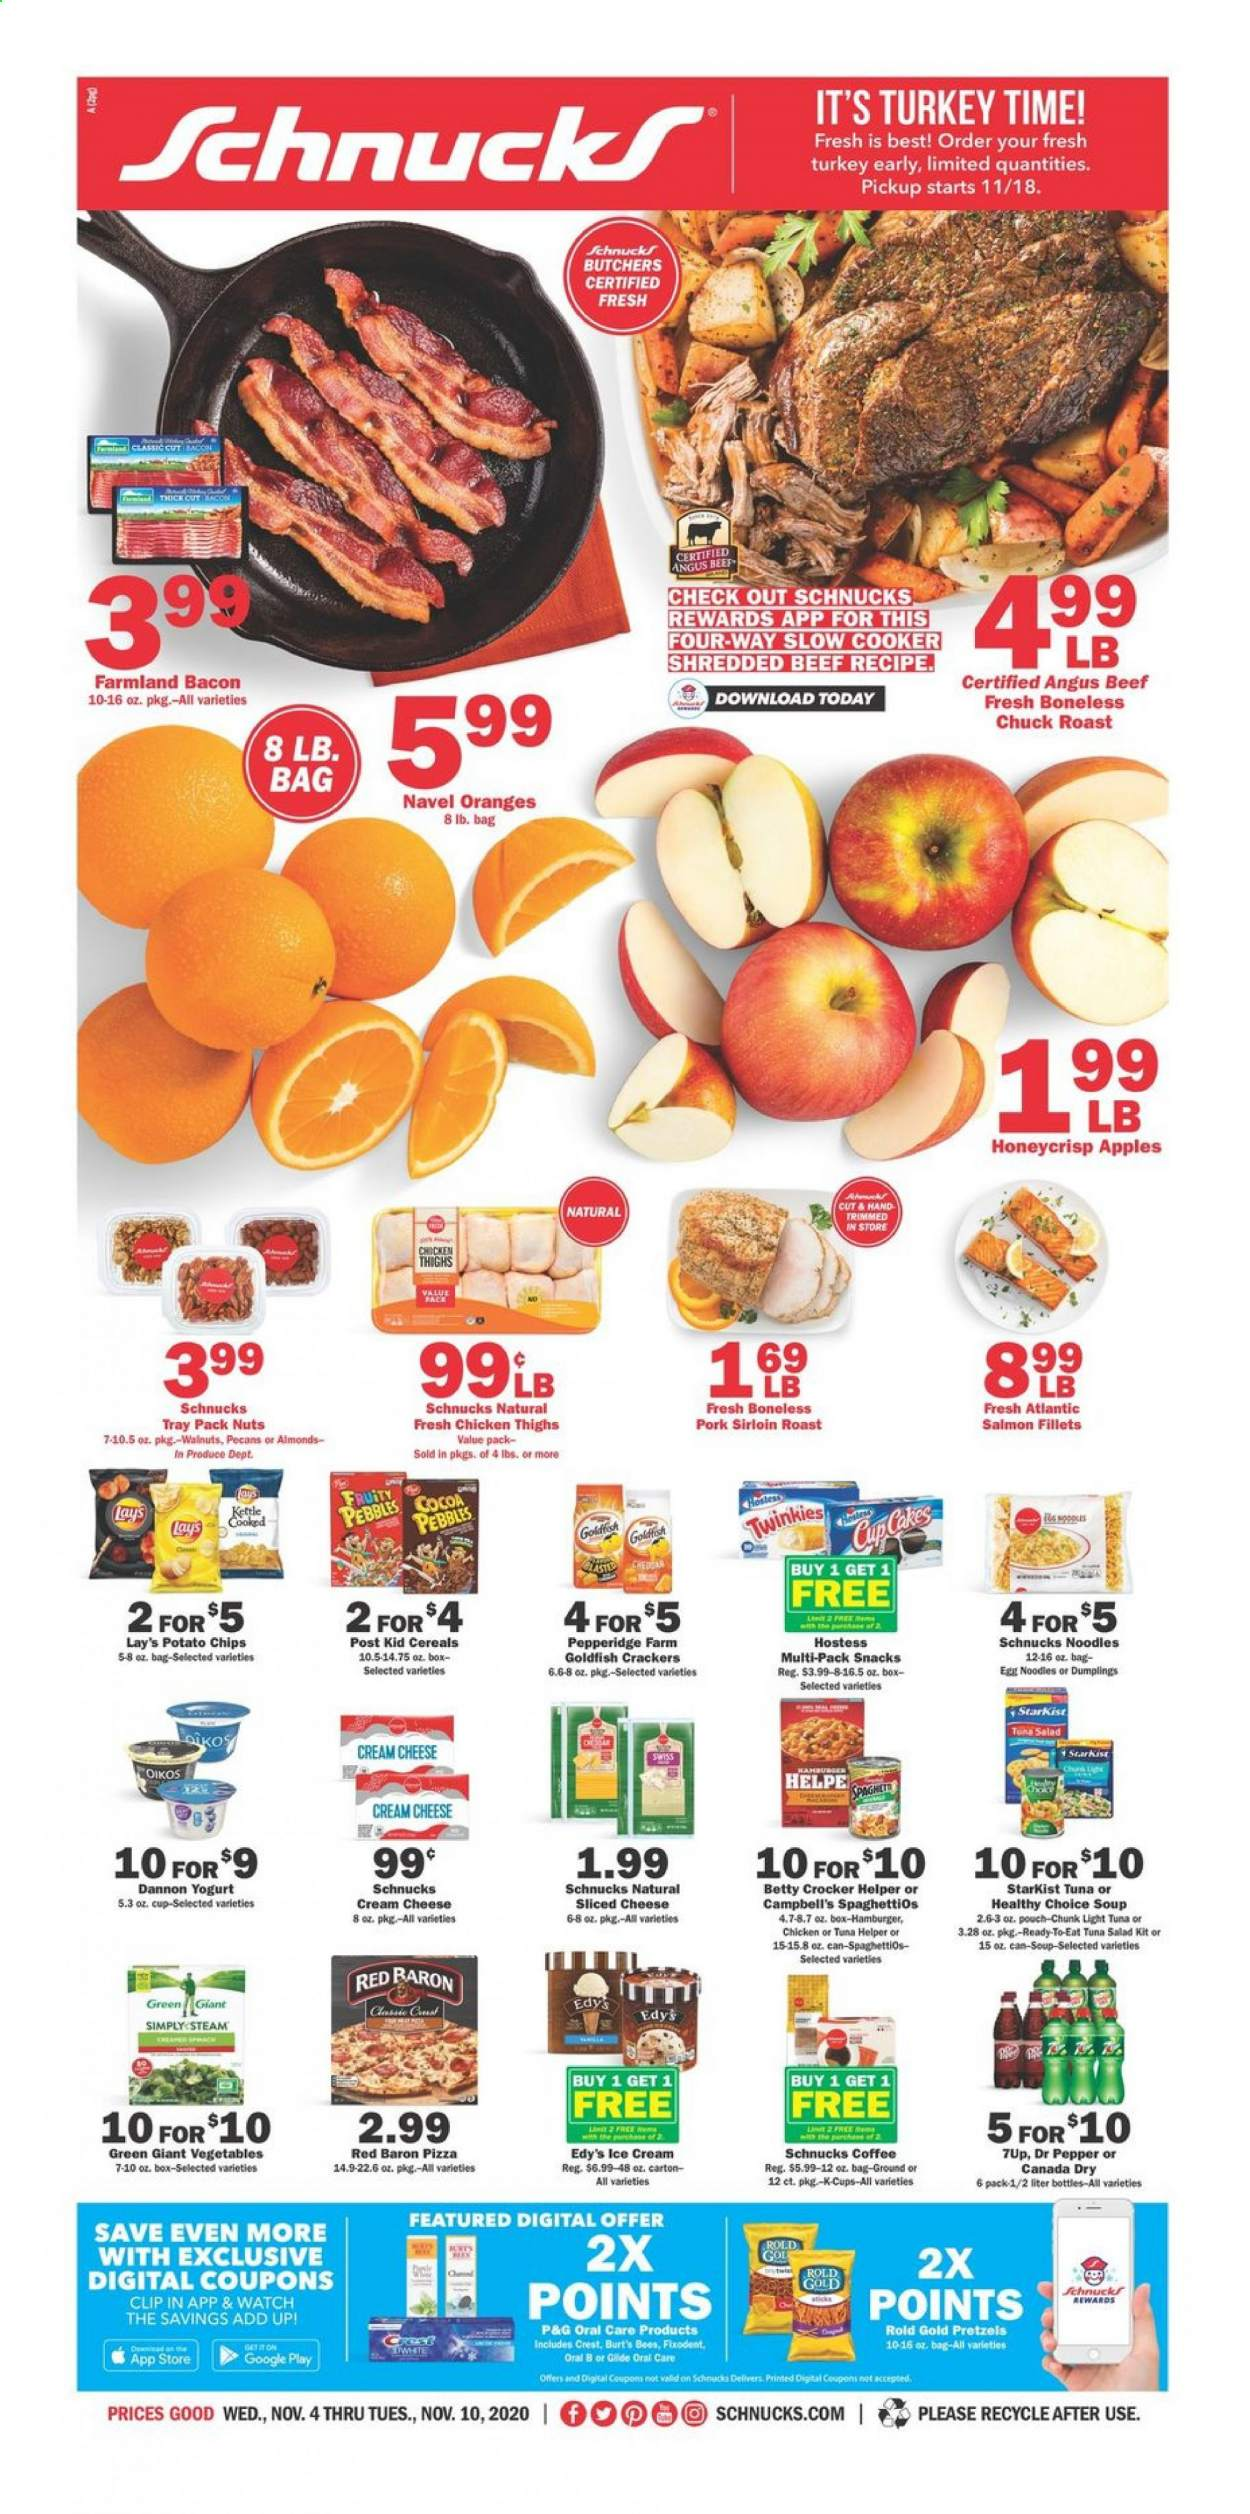 Schnucks Flyer - 11.04.2020 - 11.10.2020 - Sales products - almonds, apples, bacon, beef meat, box, campbell's, canada dry, cereals, cocoa, coffee, crackers, cream cheese, crest, cup, eggs, google, navel oranges, salmon, sliced cheese, slow cooker, tray, tuna, turkey, walnuts, watch, yogurt, ice cream, pizza, pork meat, potato chips, pretzels, chicken, pecans, orange, oral-b, chicken thighs, chips, cheese, burger; burgers, noodles, egg noodles, soup, vegetables, pepper, snack, hamburger, light tuna, lay's, salad, nuts, roast, apple, oranges, vegetable, steam. Page 1.